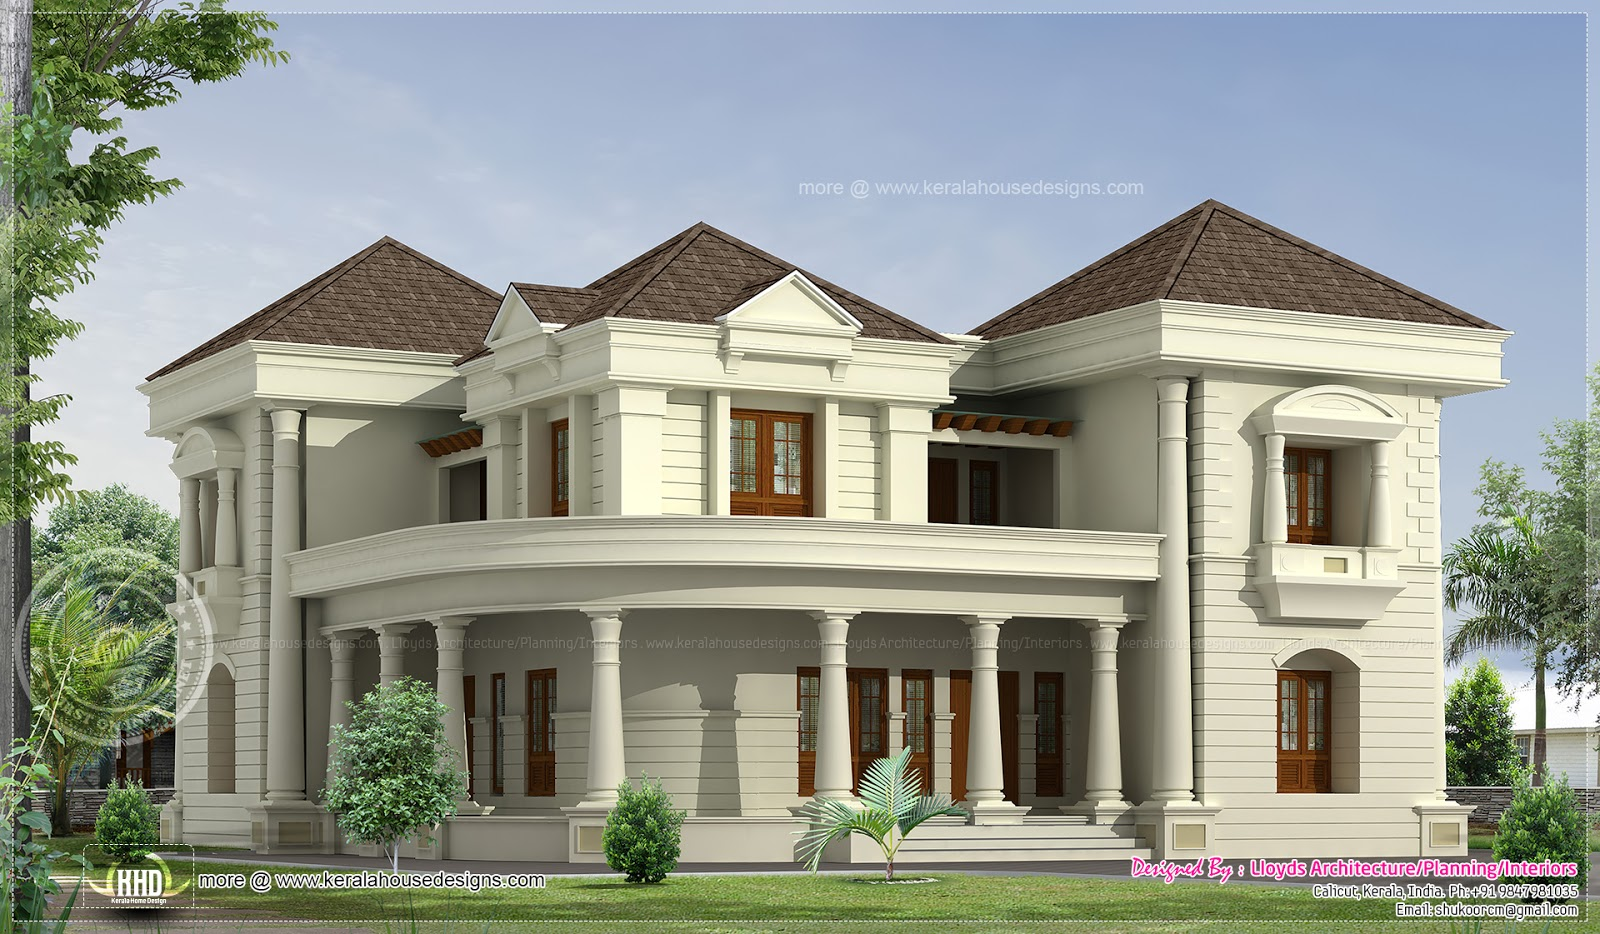 Indian bungalow plans images Indian bungalow design